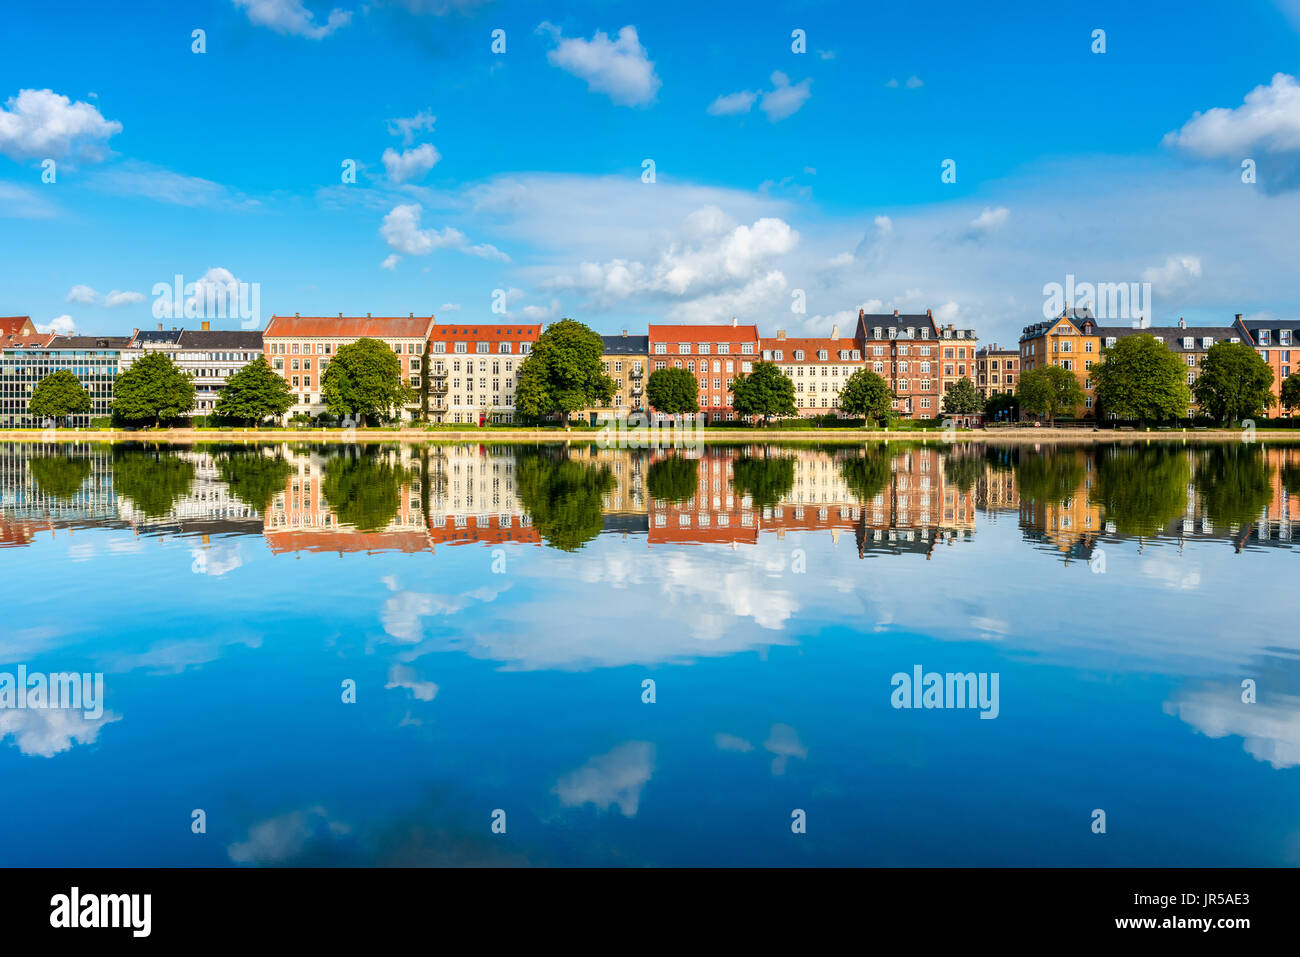 Houses along river in Downtown District of Copenhagen Denmark - Stock Image